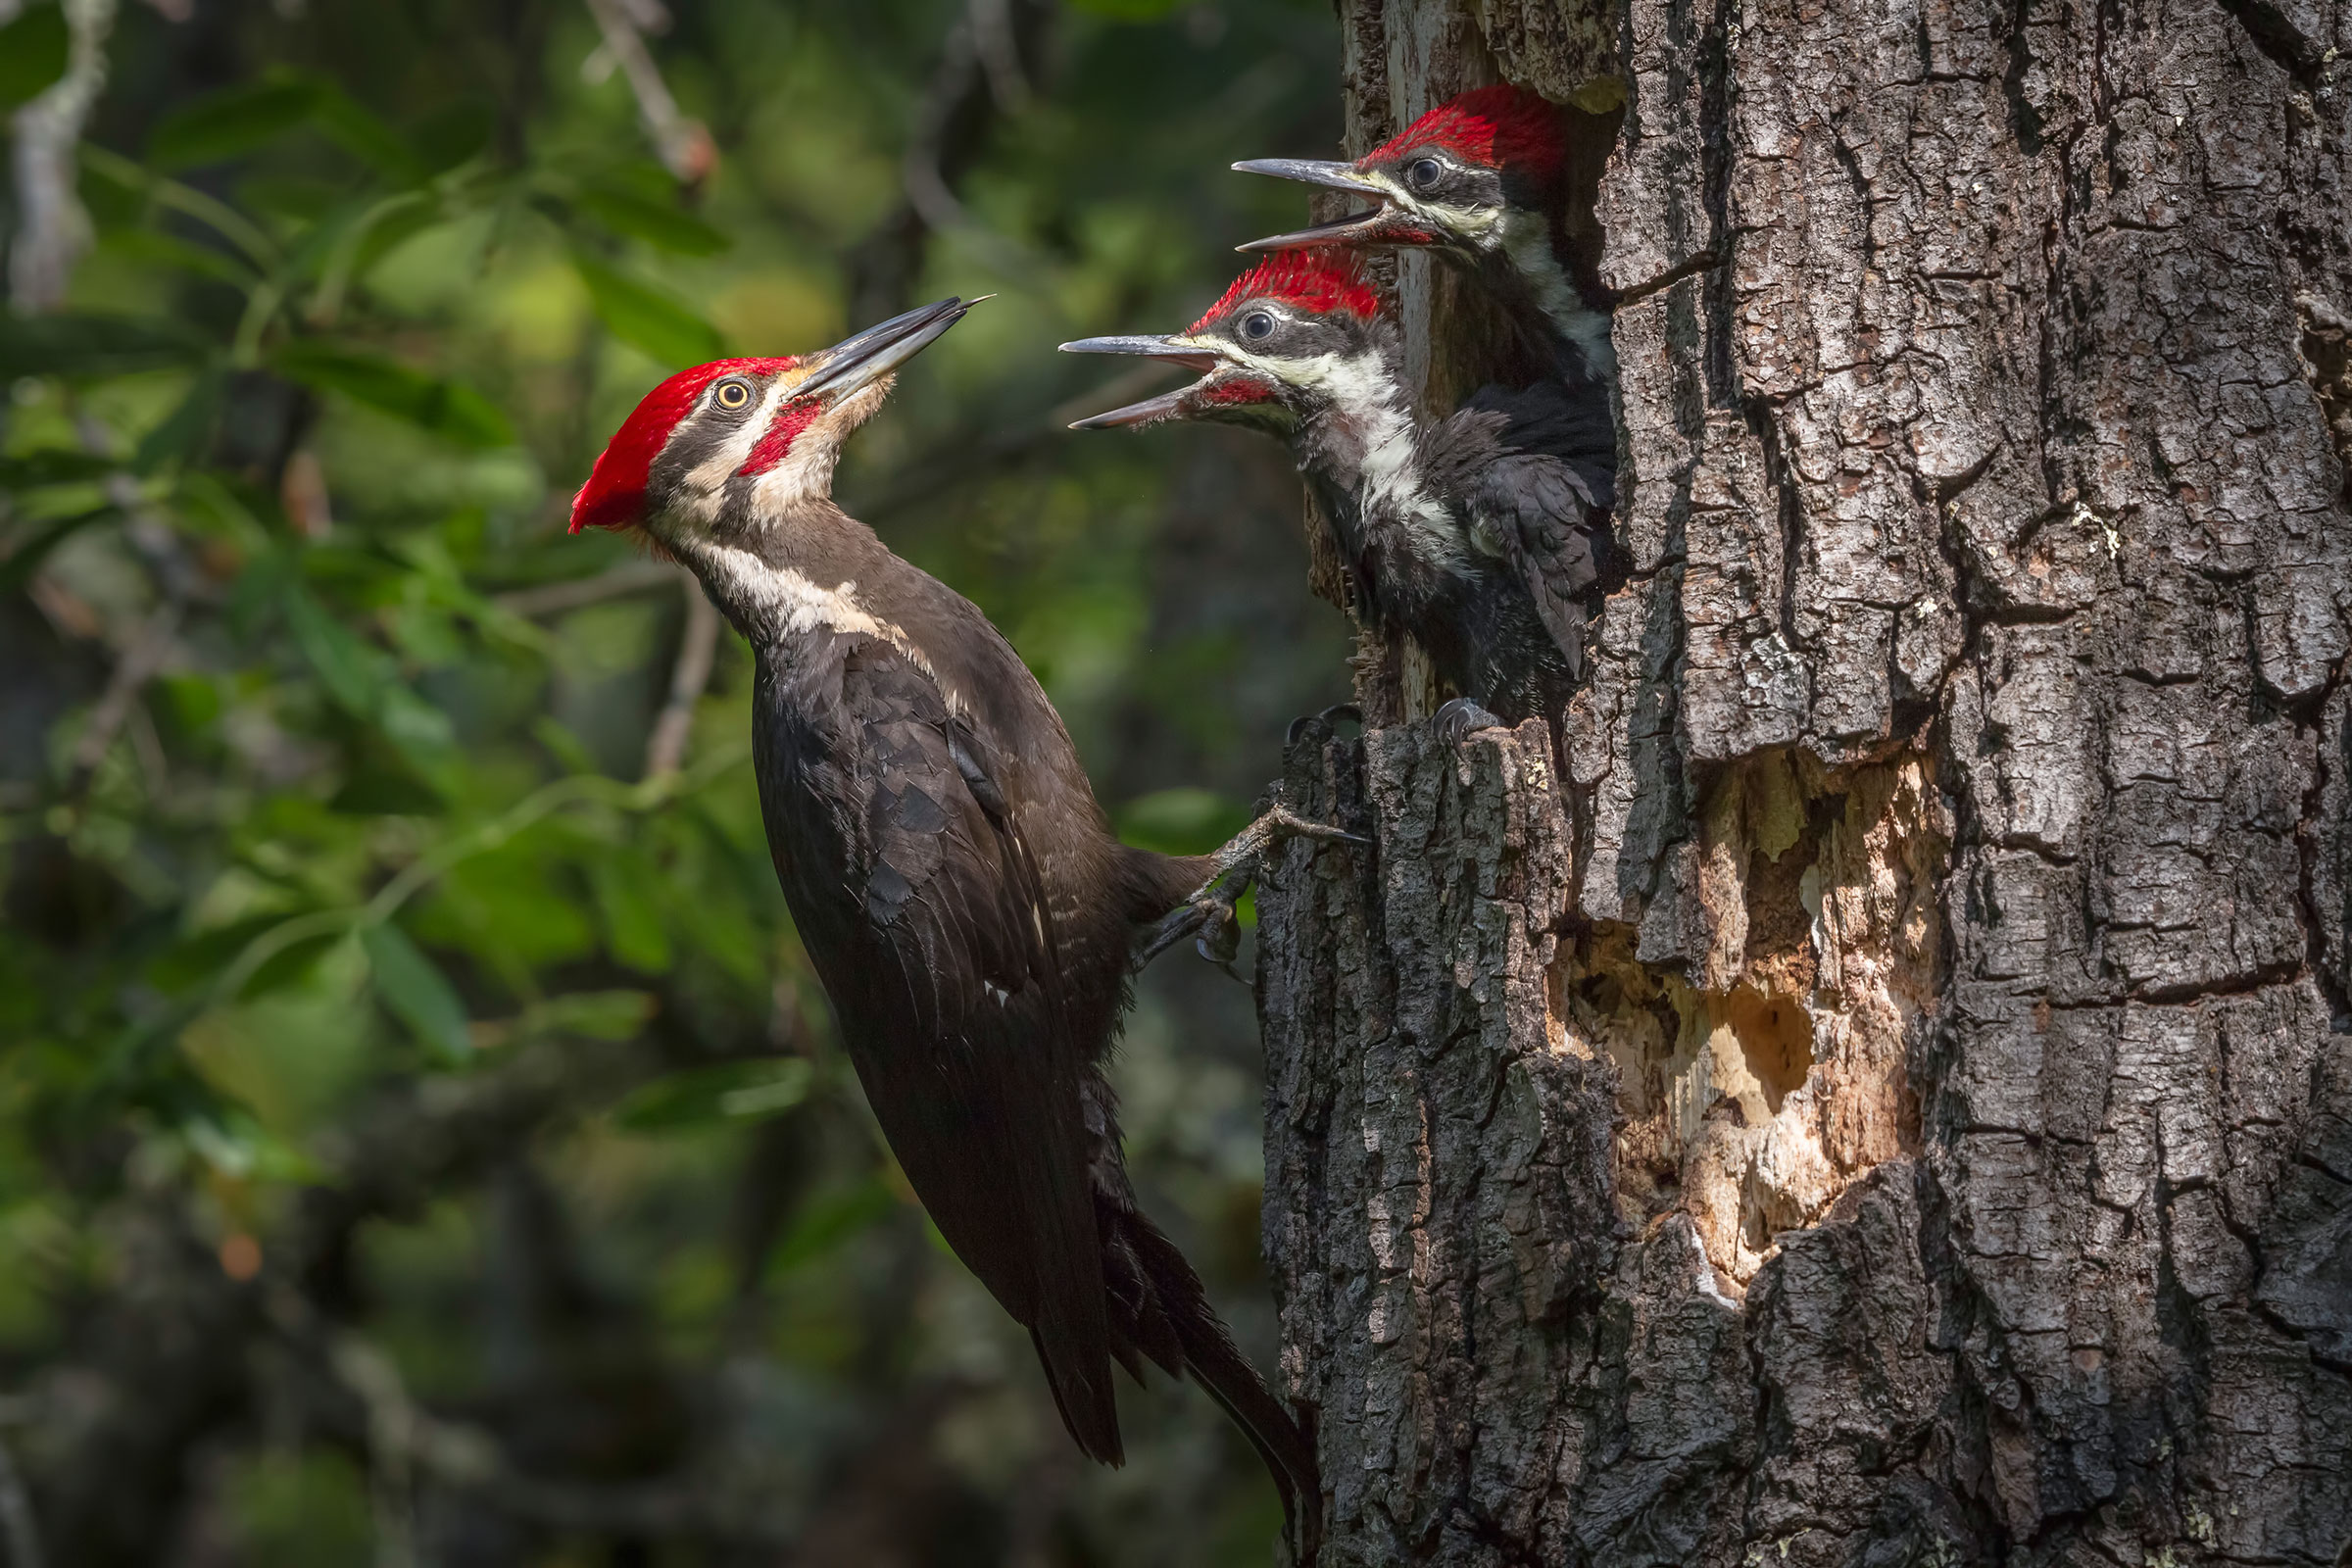 Pileated Woodpecker chicks make buzzy calls while waiting for their food to be delivered. Sylvia Hunt/Audubon Photography Awards